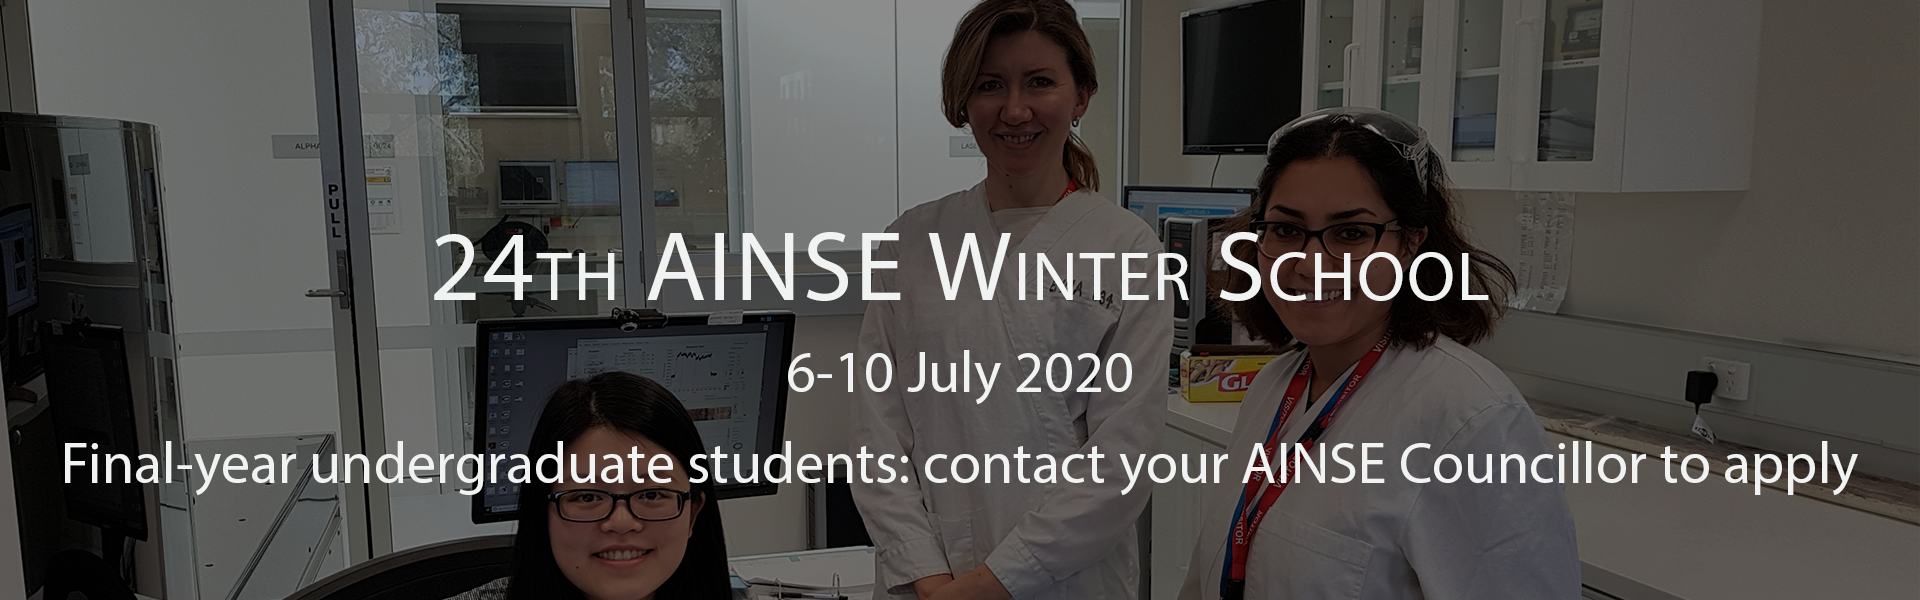 AINSE Winter School